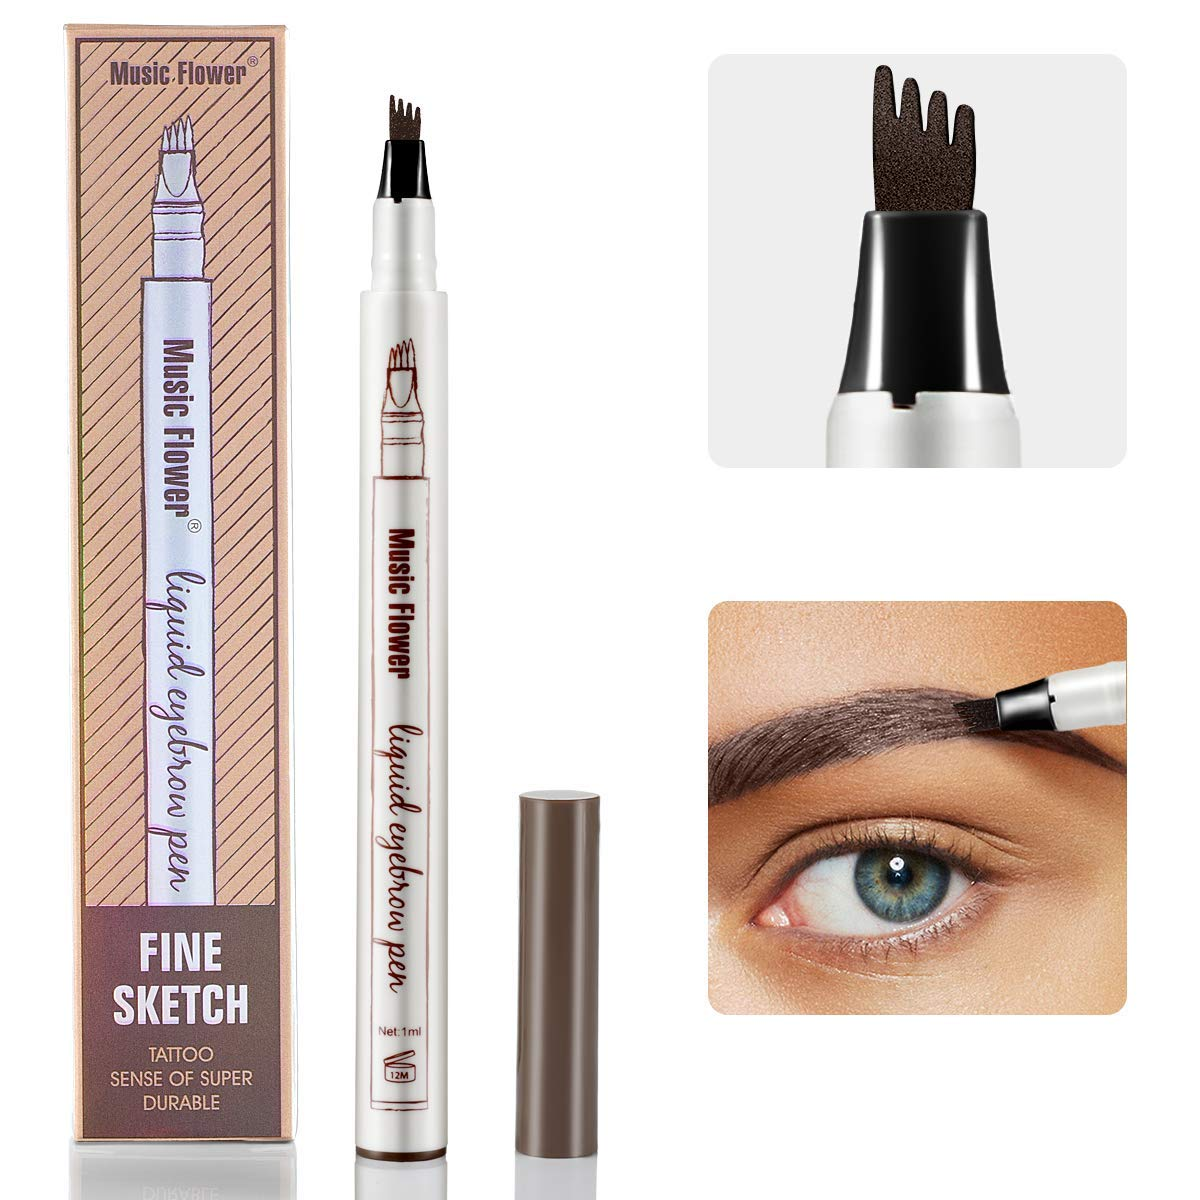 Eyebrow Marker: manufacturers, benefits and reviews